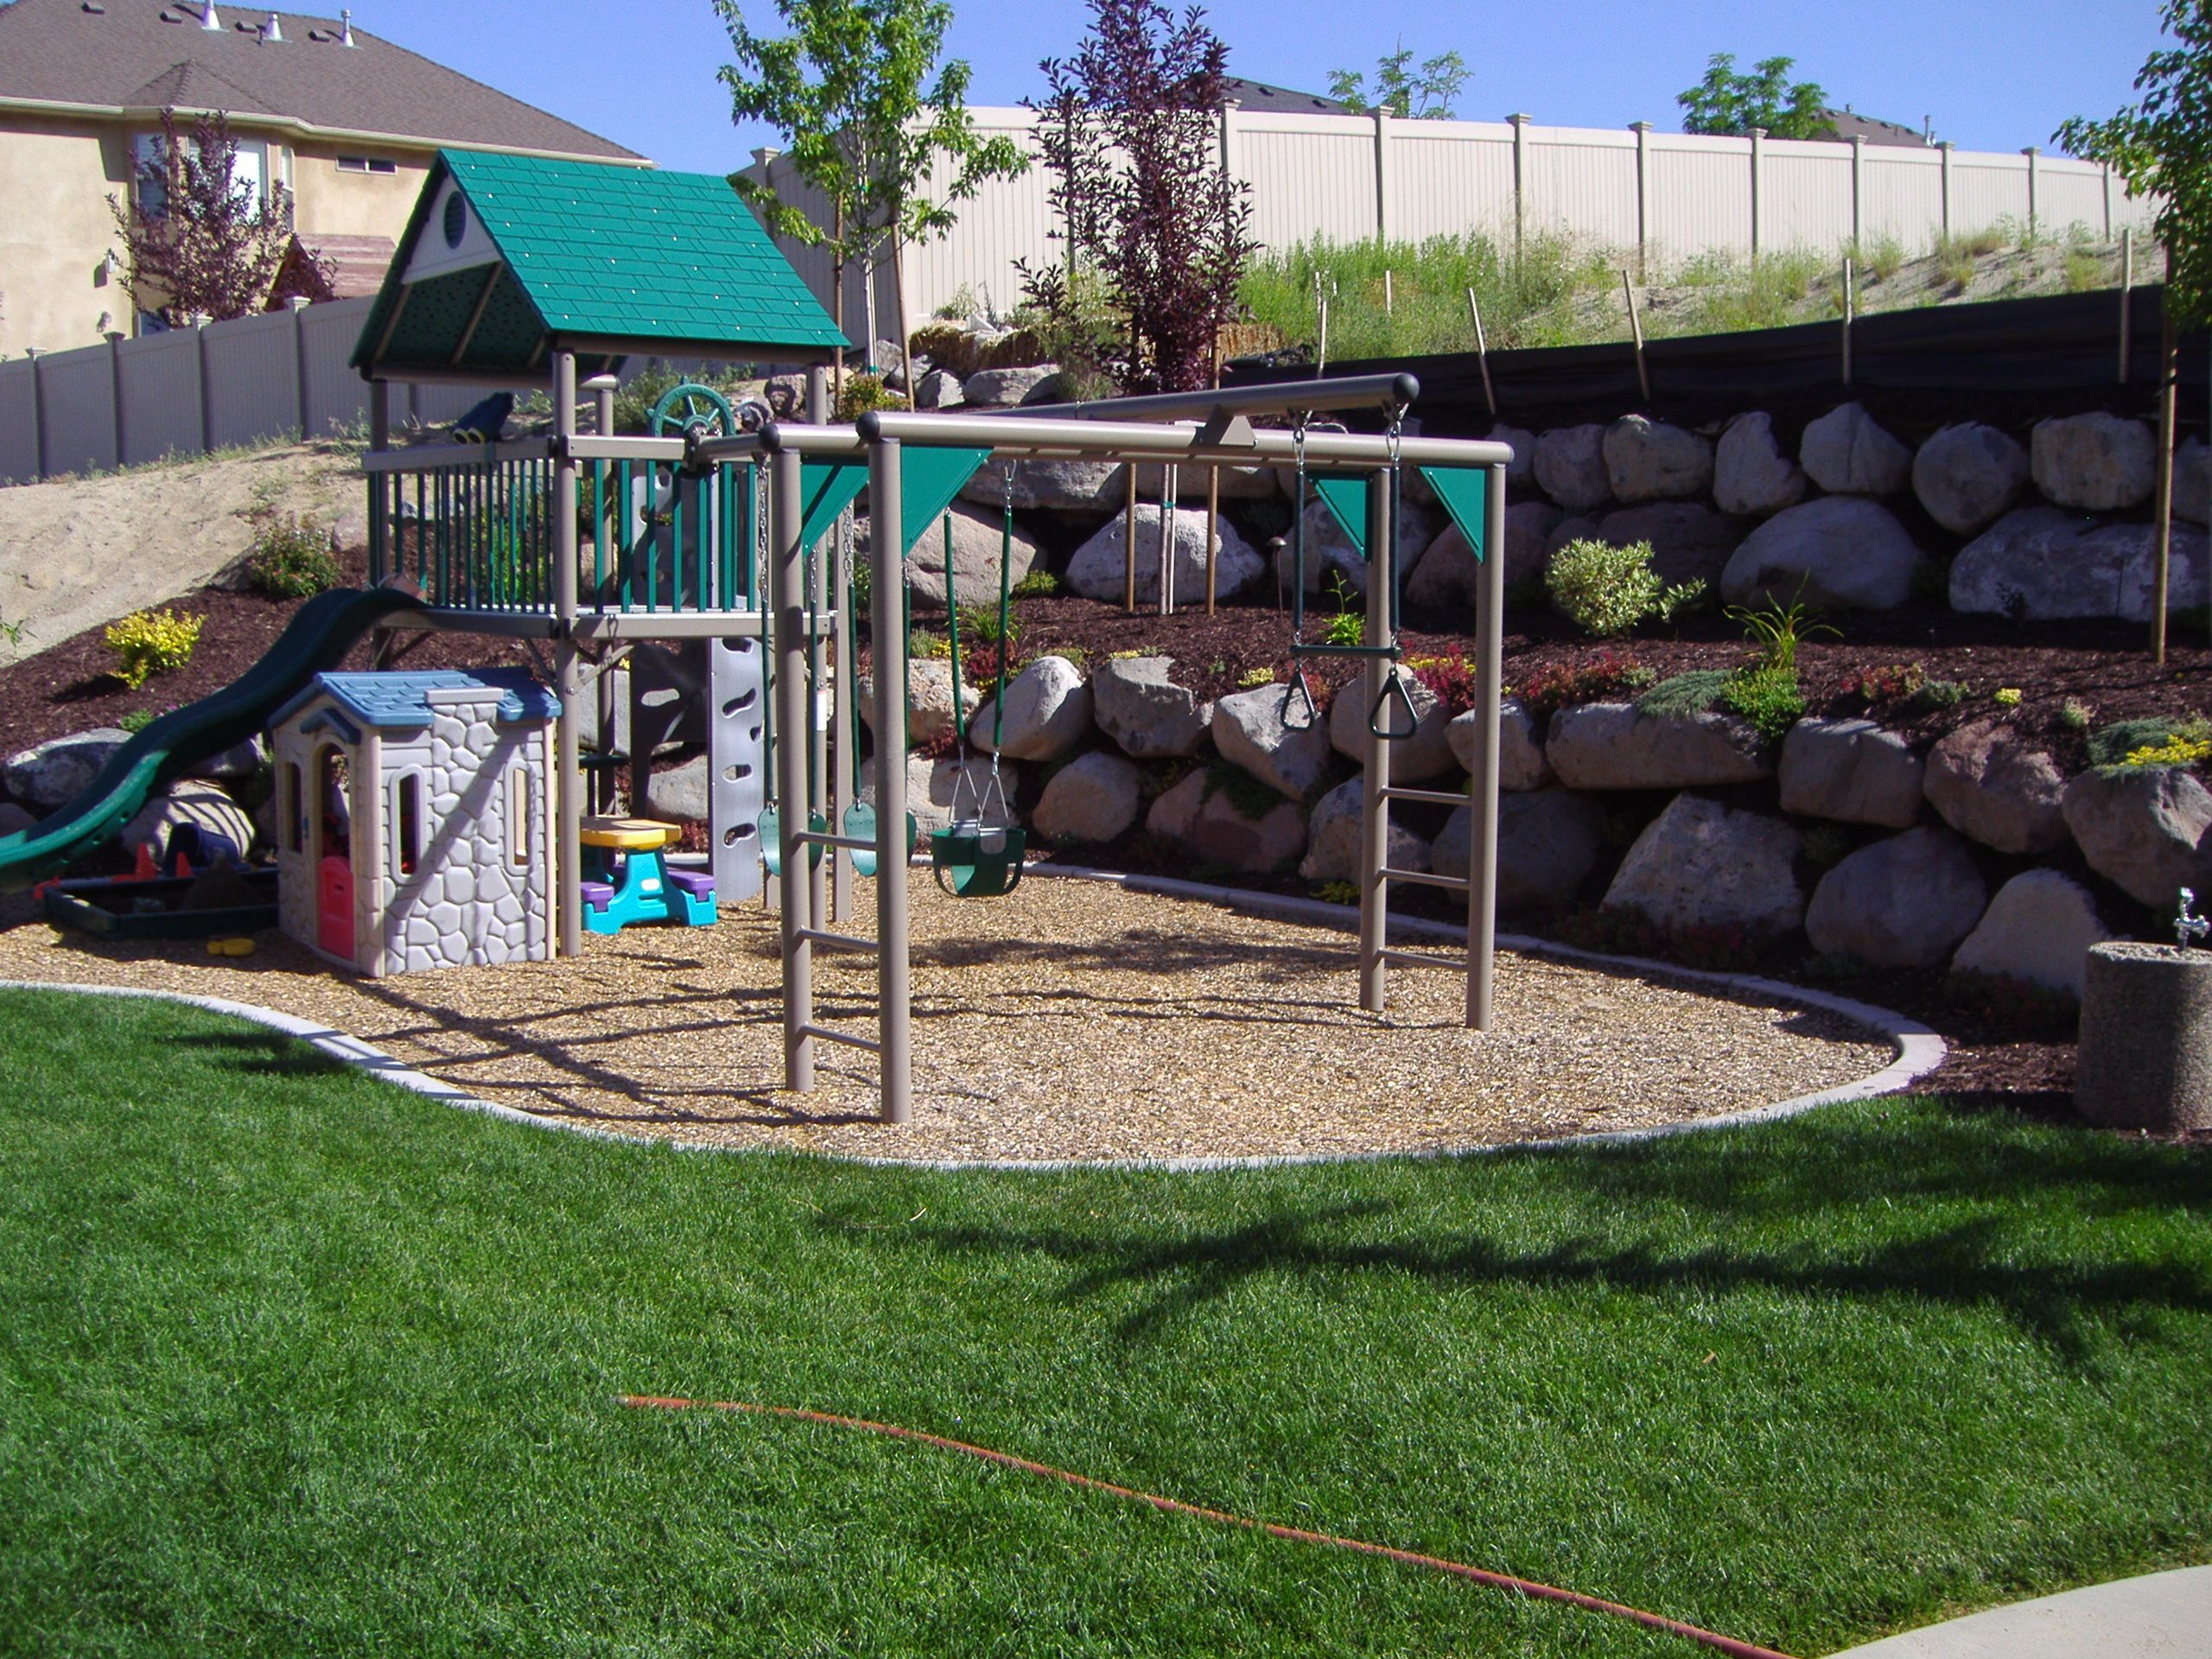 kid friendly play areas with water features putting greens and design - Garden Design Children S Play Area